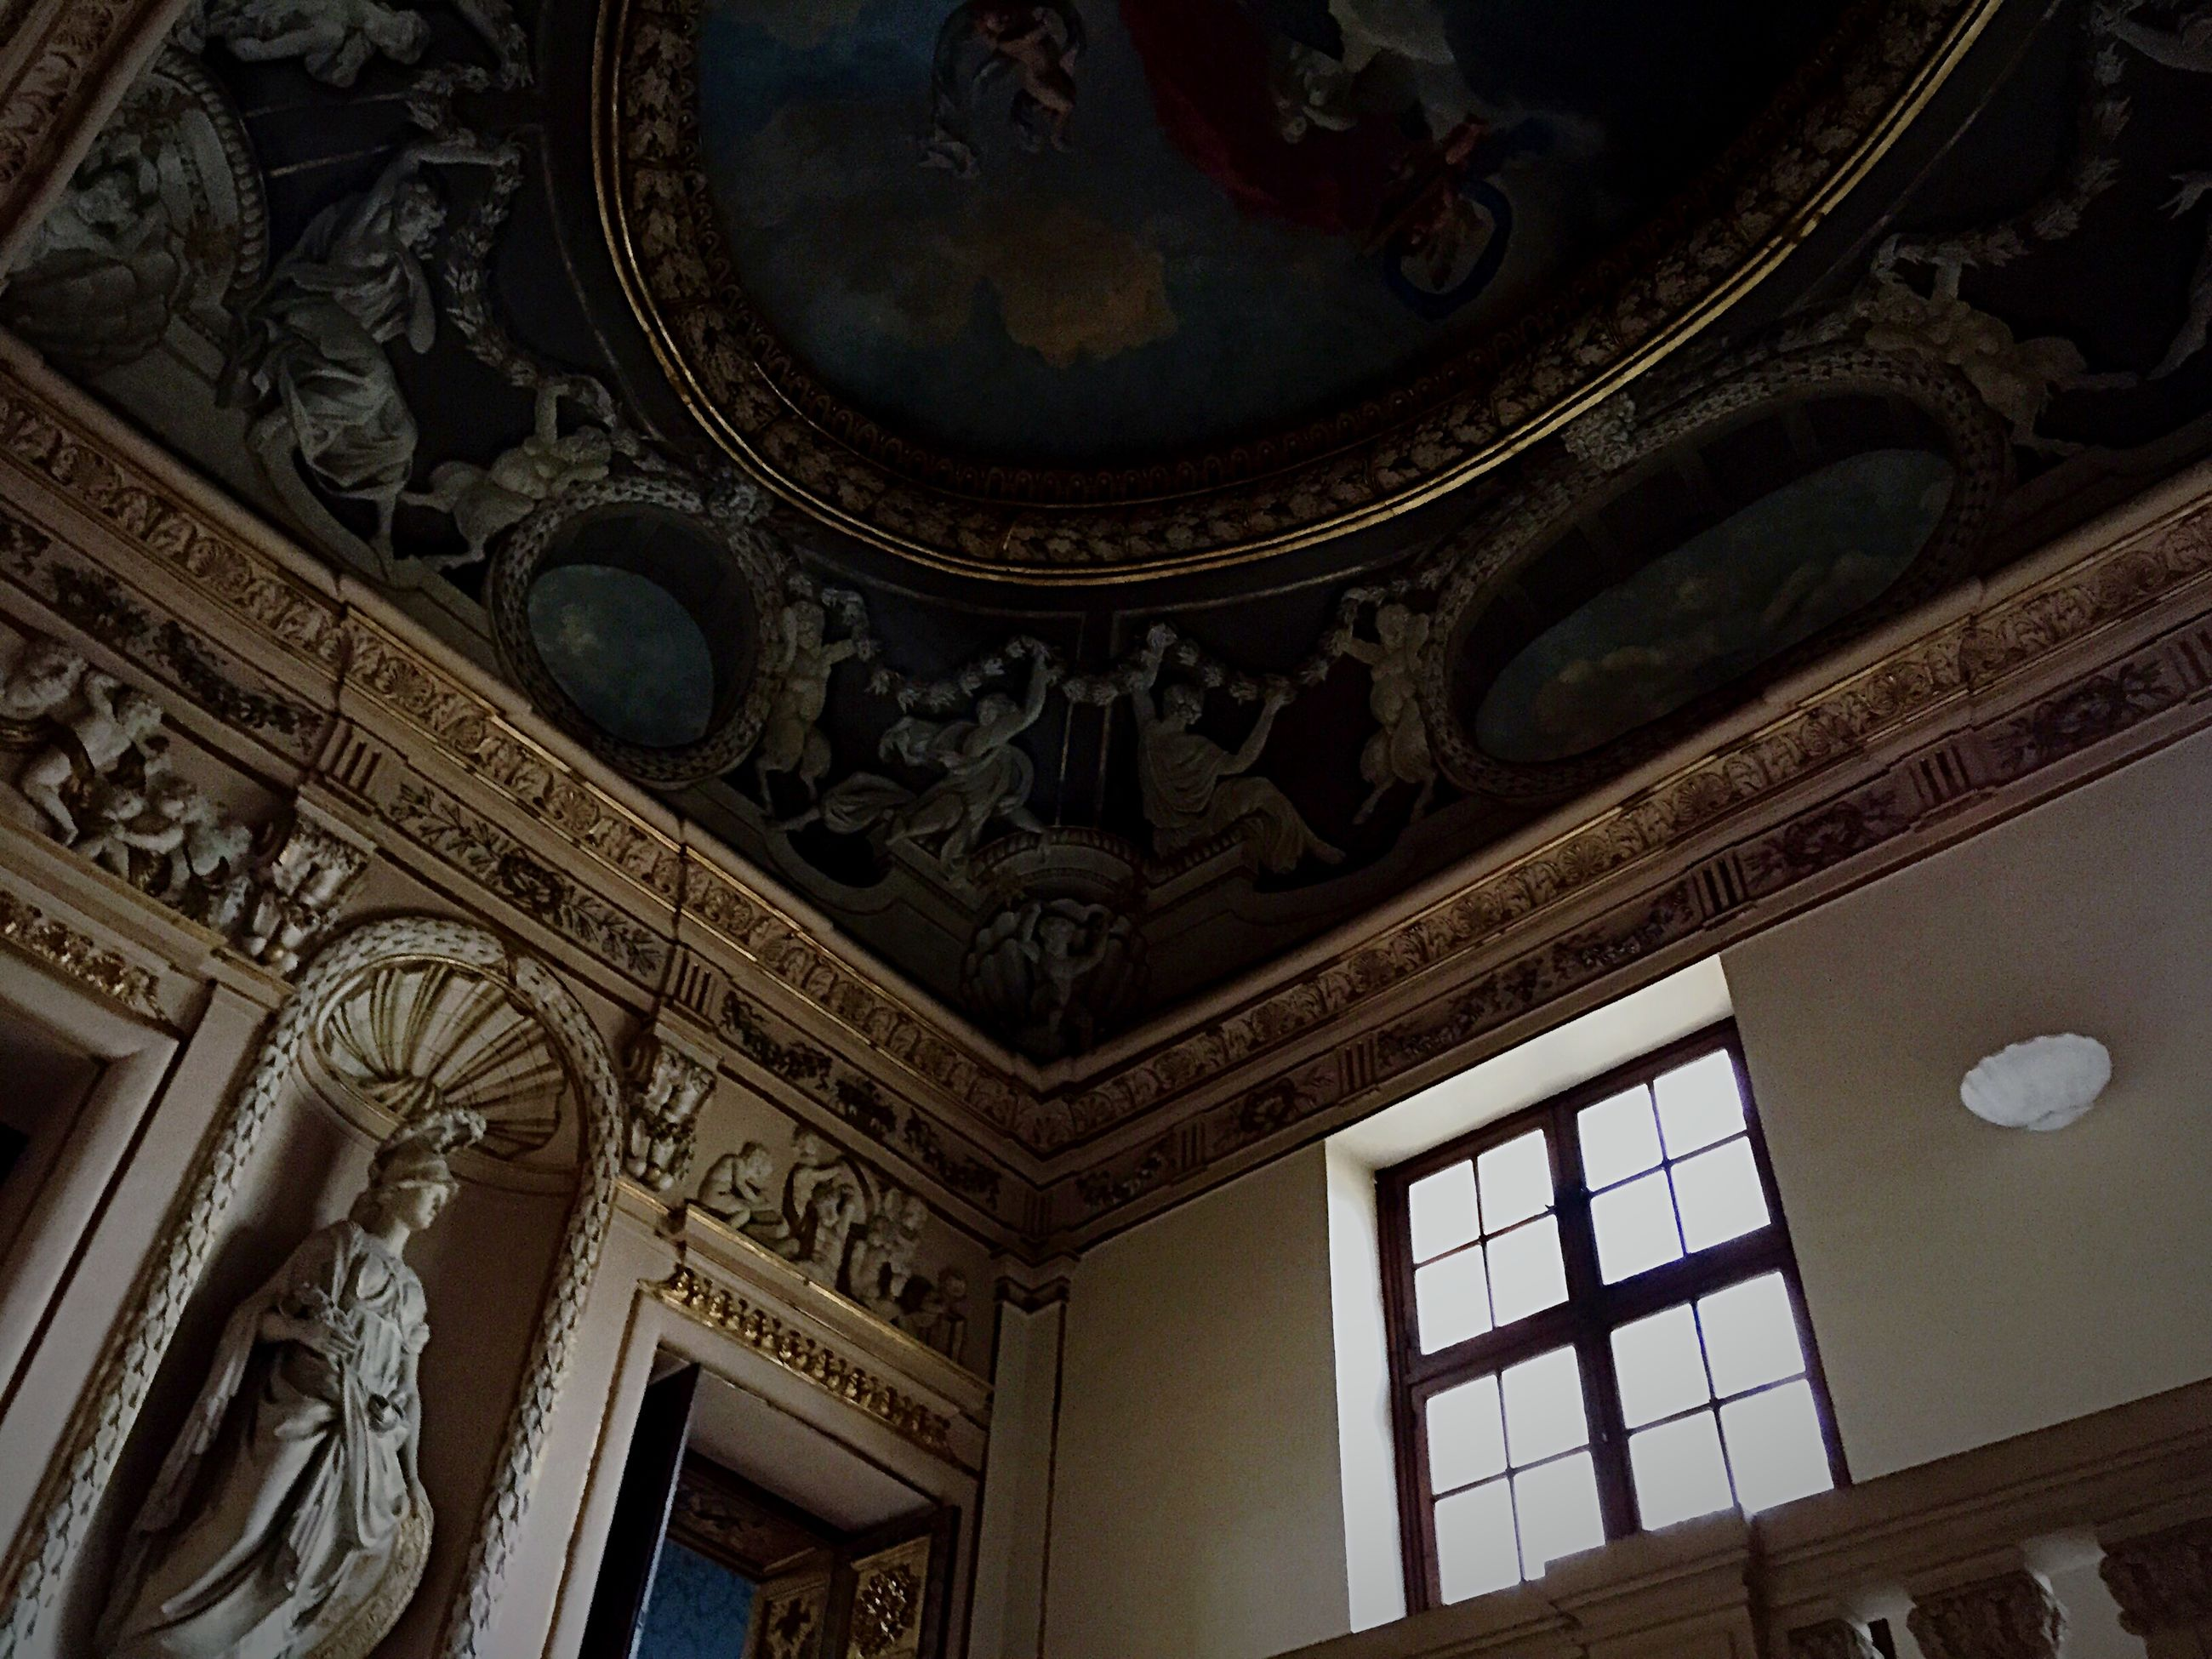 architecture, low angle view, built structure, indoors, religion, place of worship, spirituality, ornate, building exterior, ceiling, window, art and craft, design, church, architectural feature, art, history, creativity, pattern